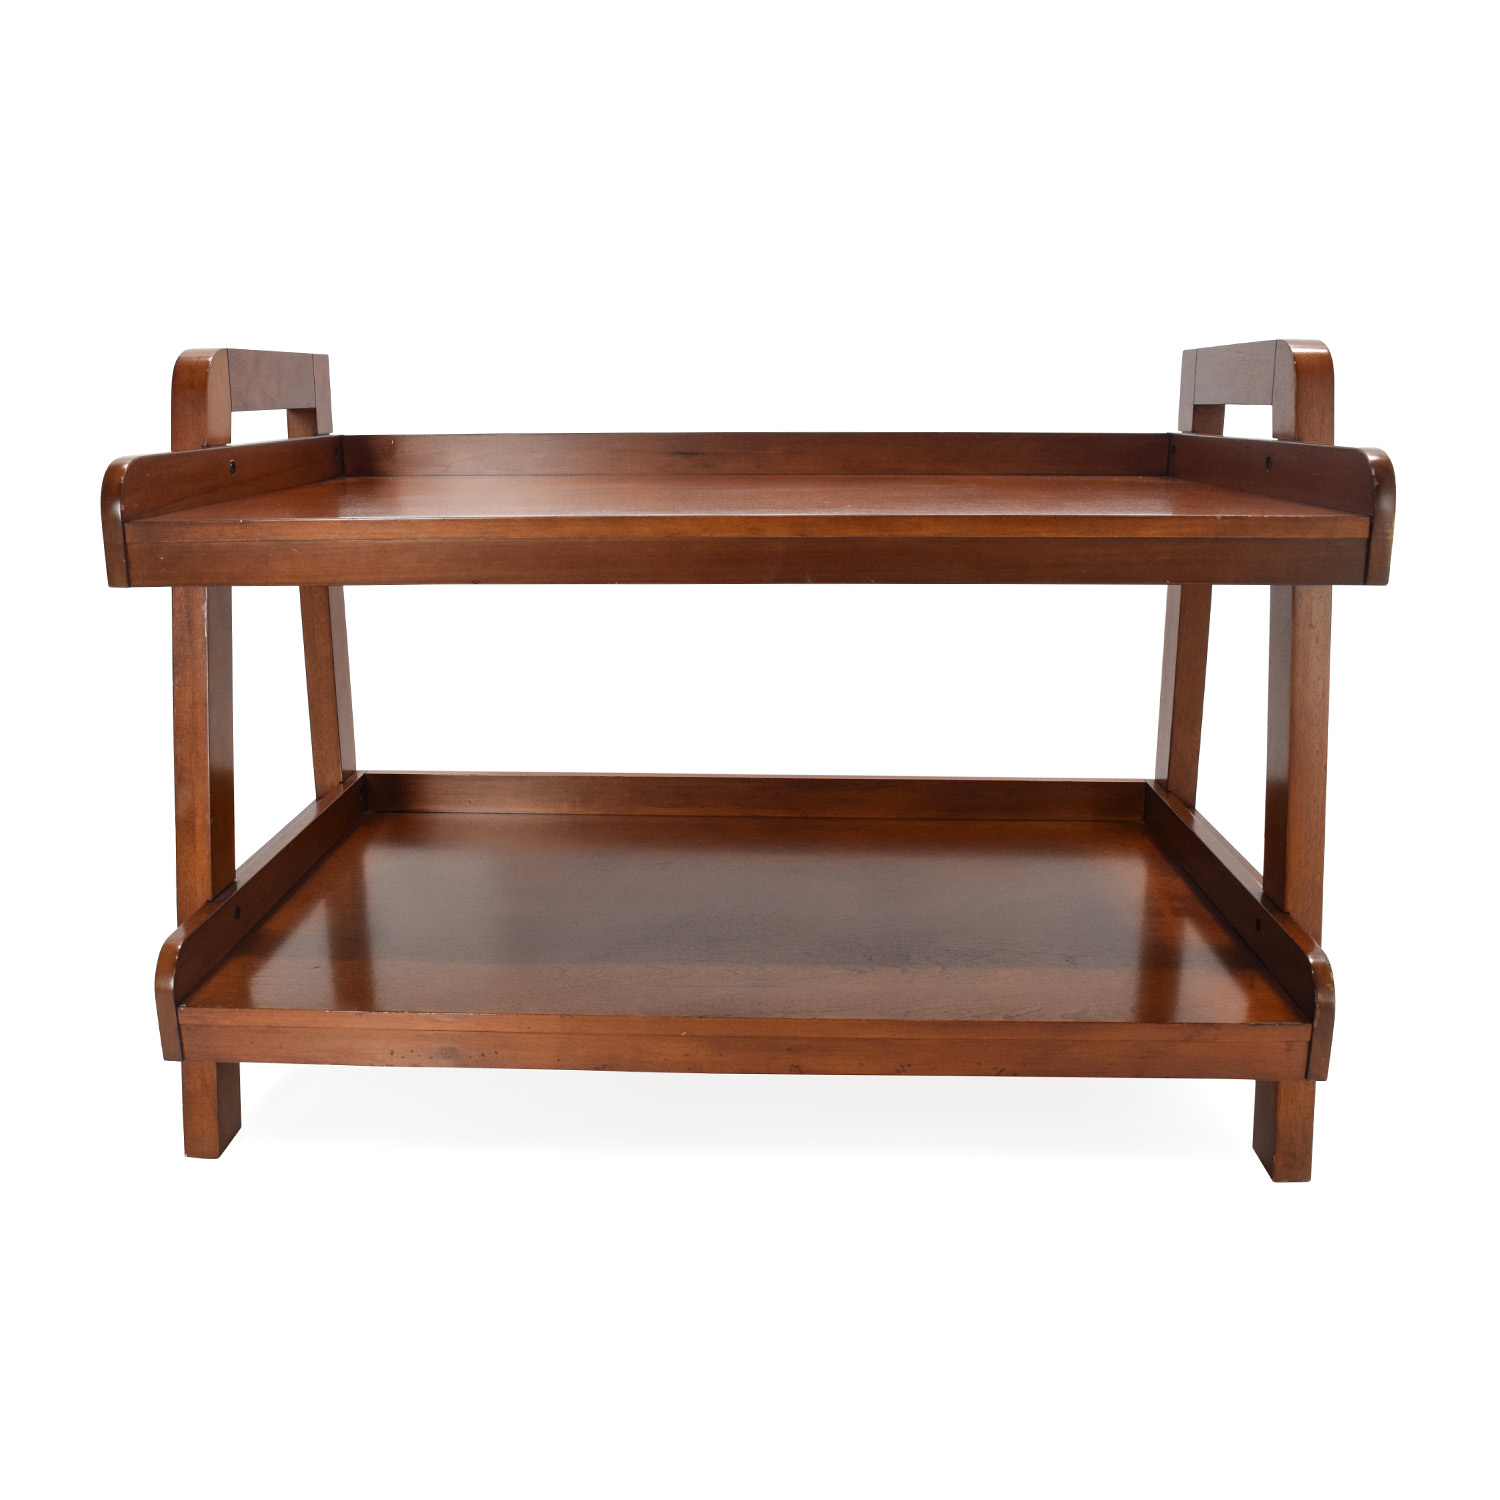 Wood Tv Stand Alder Wood Tv Stand Long Tv Standtv